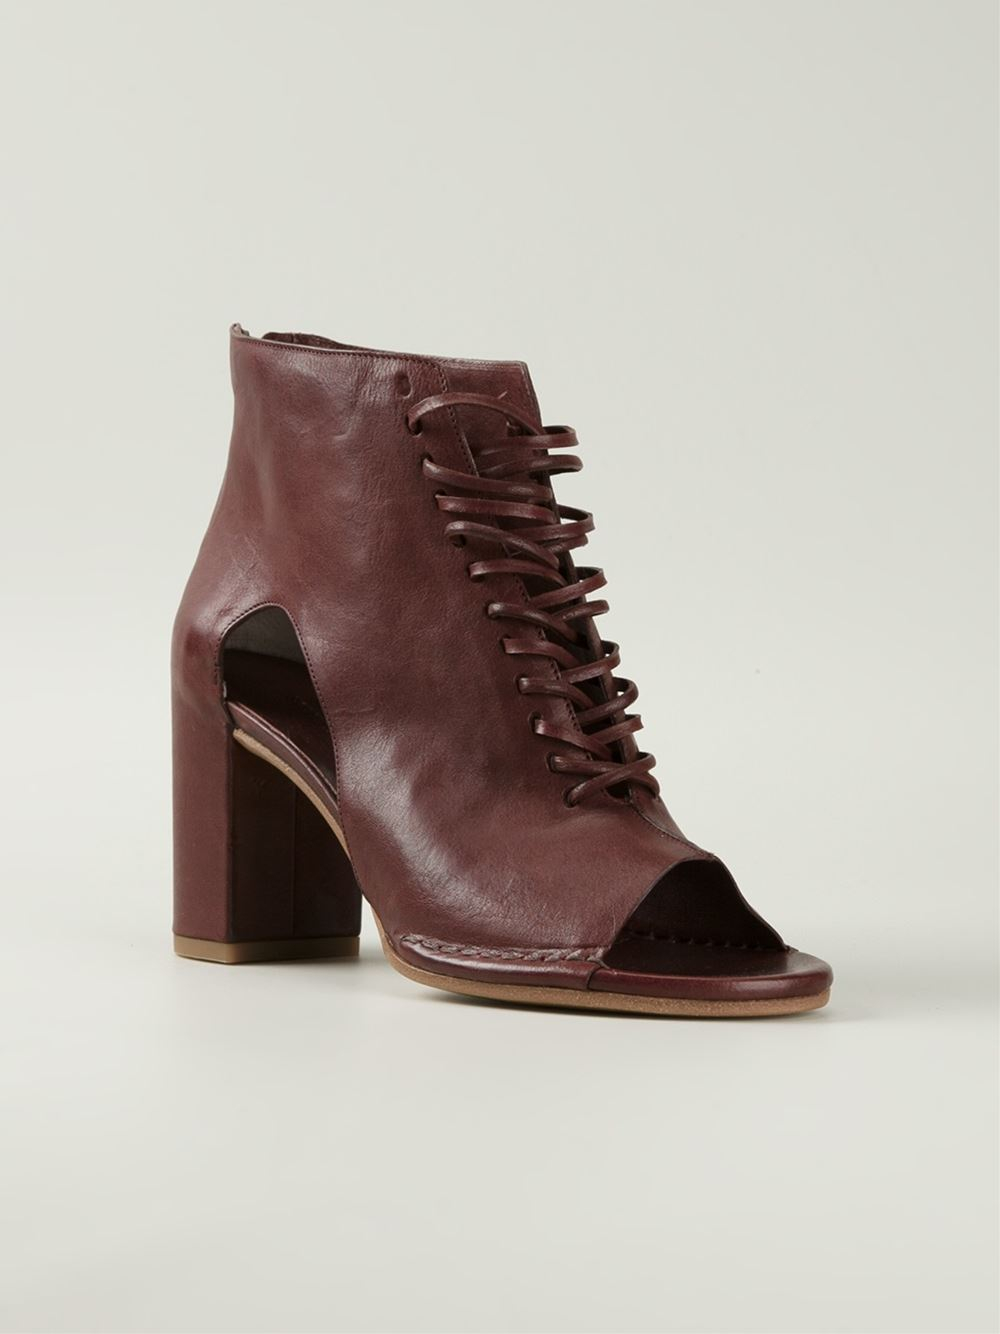 roberto carlo open toe ankle boots in lyst